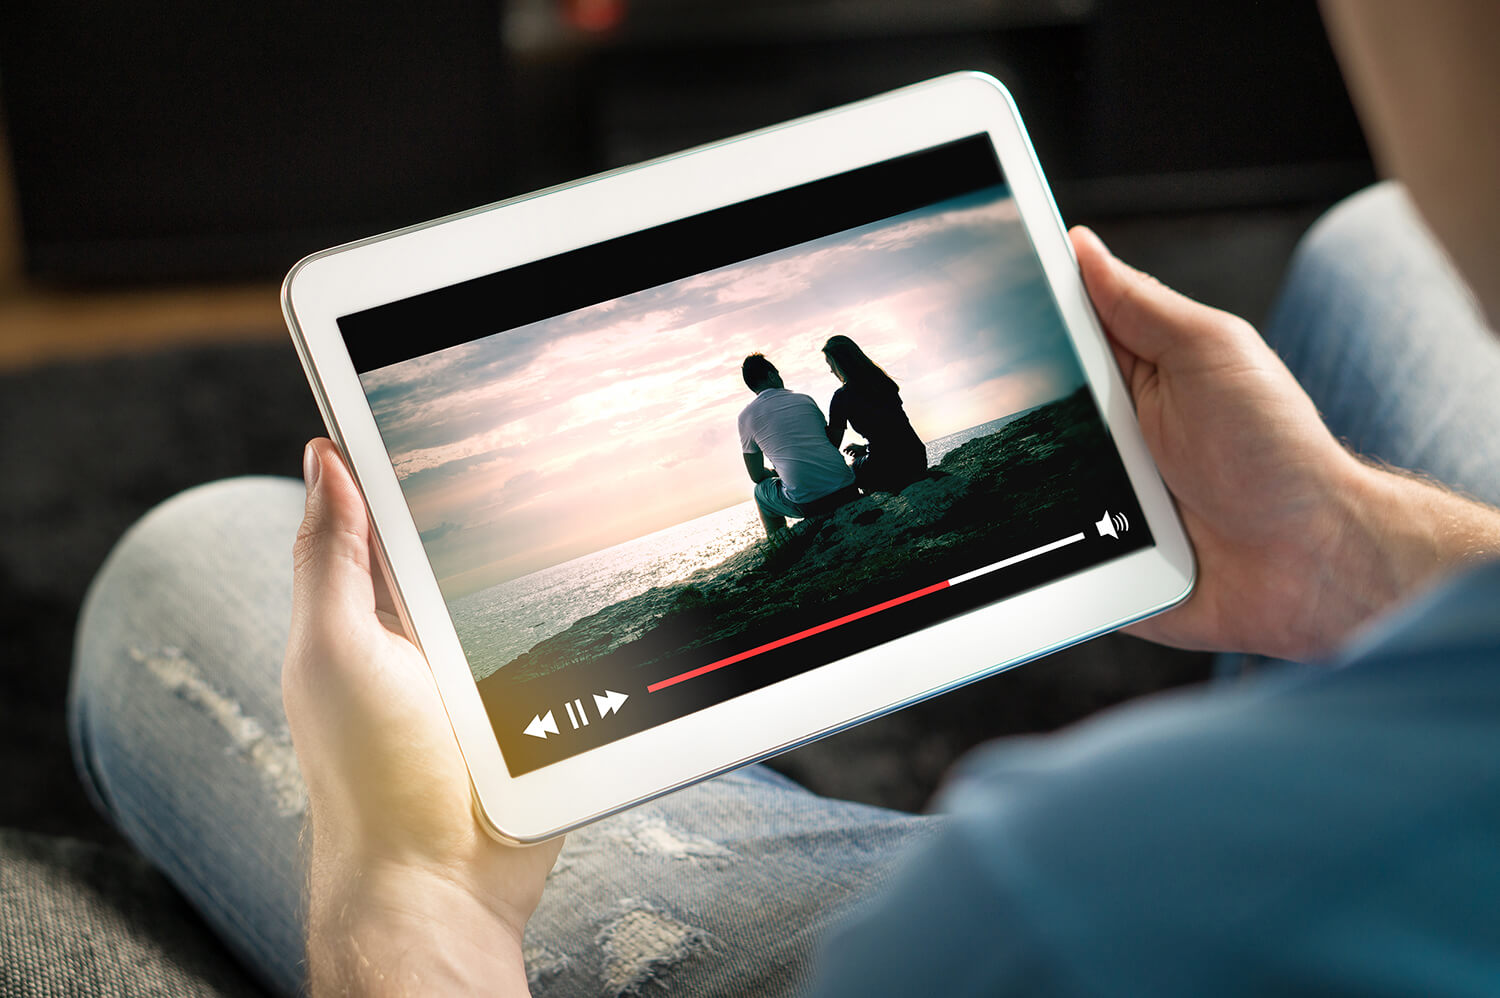 Watching a film on a tablet